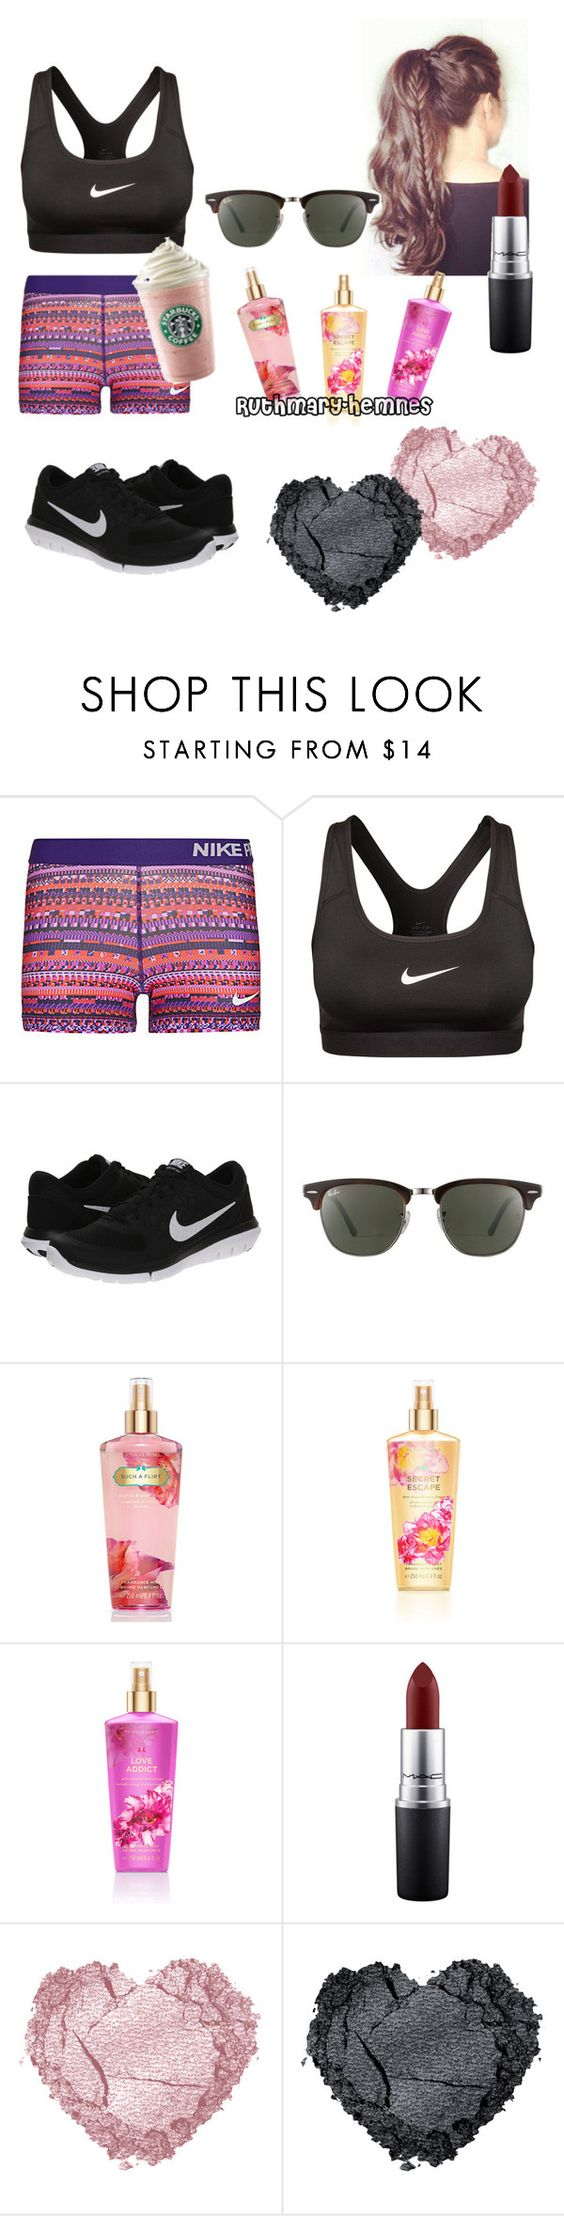 """Untitled #26"" by ruthmary-hemnes on Polyvore featuring NIKE, Ray-Ban, Victoria's Secret, MAC Cosmetics, women's clothing, women, female, woman, misses and juniors"